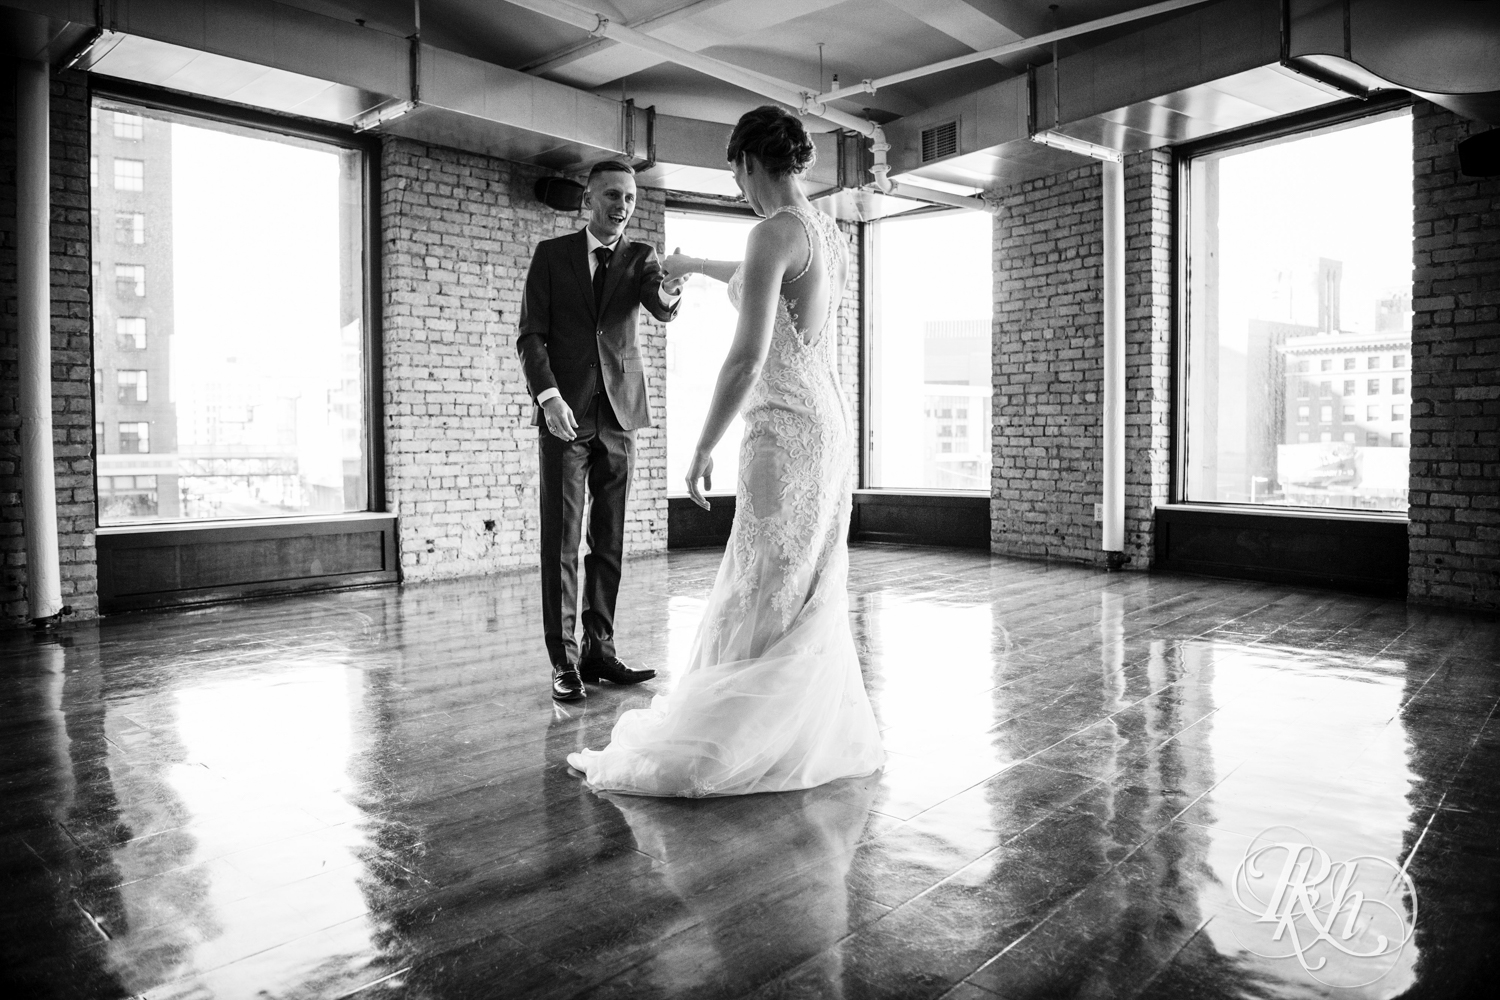 Jillian & Jared - Minnesota Wedding Photography - Lumber Exchange Event Center - RKH Images - Blog (20 of 87).jpg